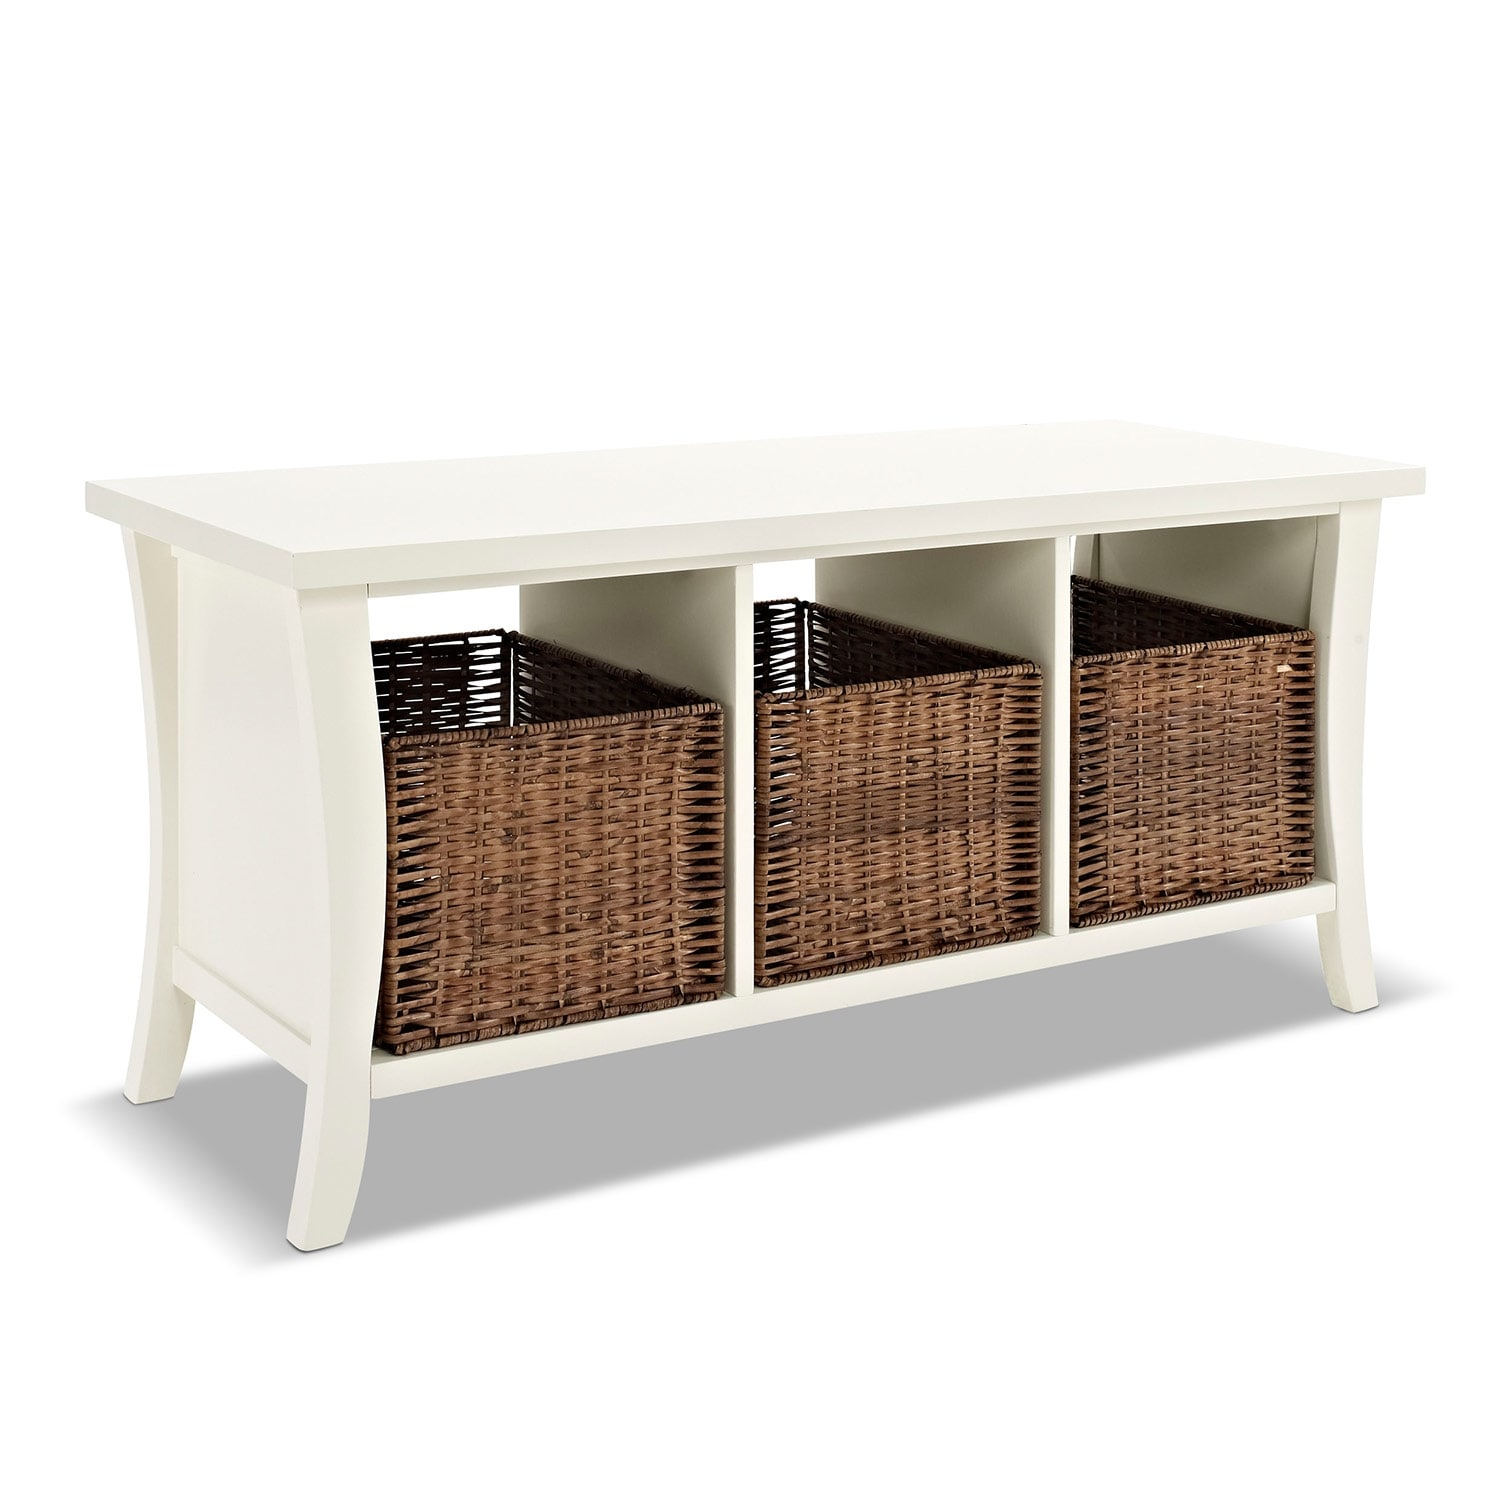 Mae White Entryway Storage Bench